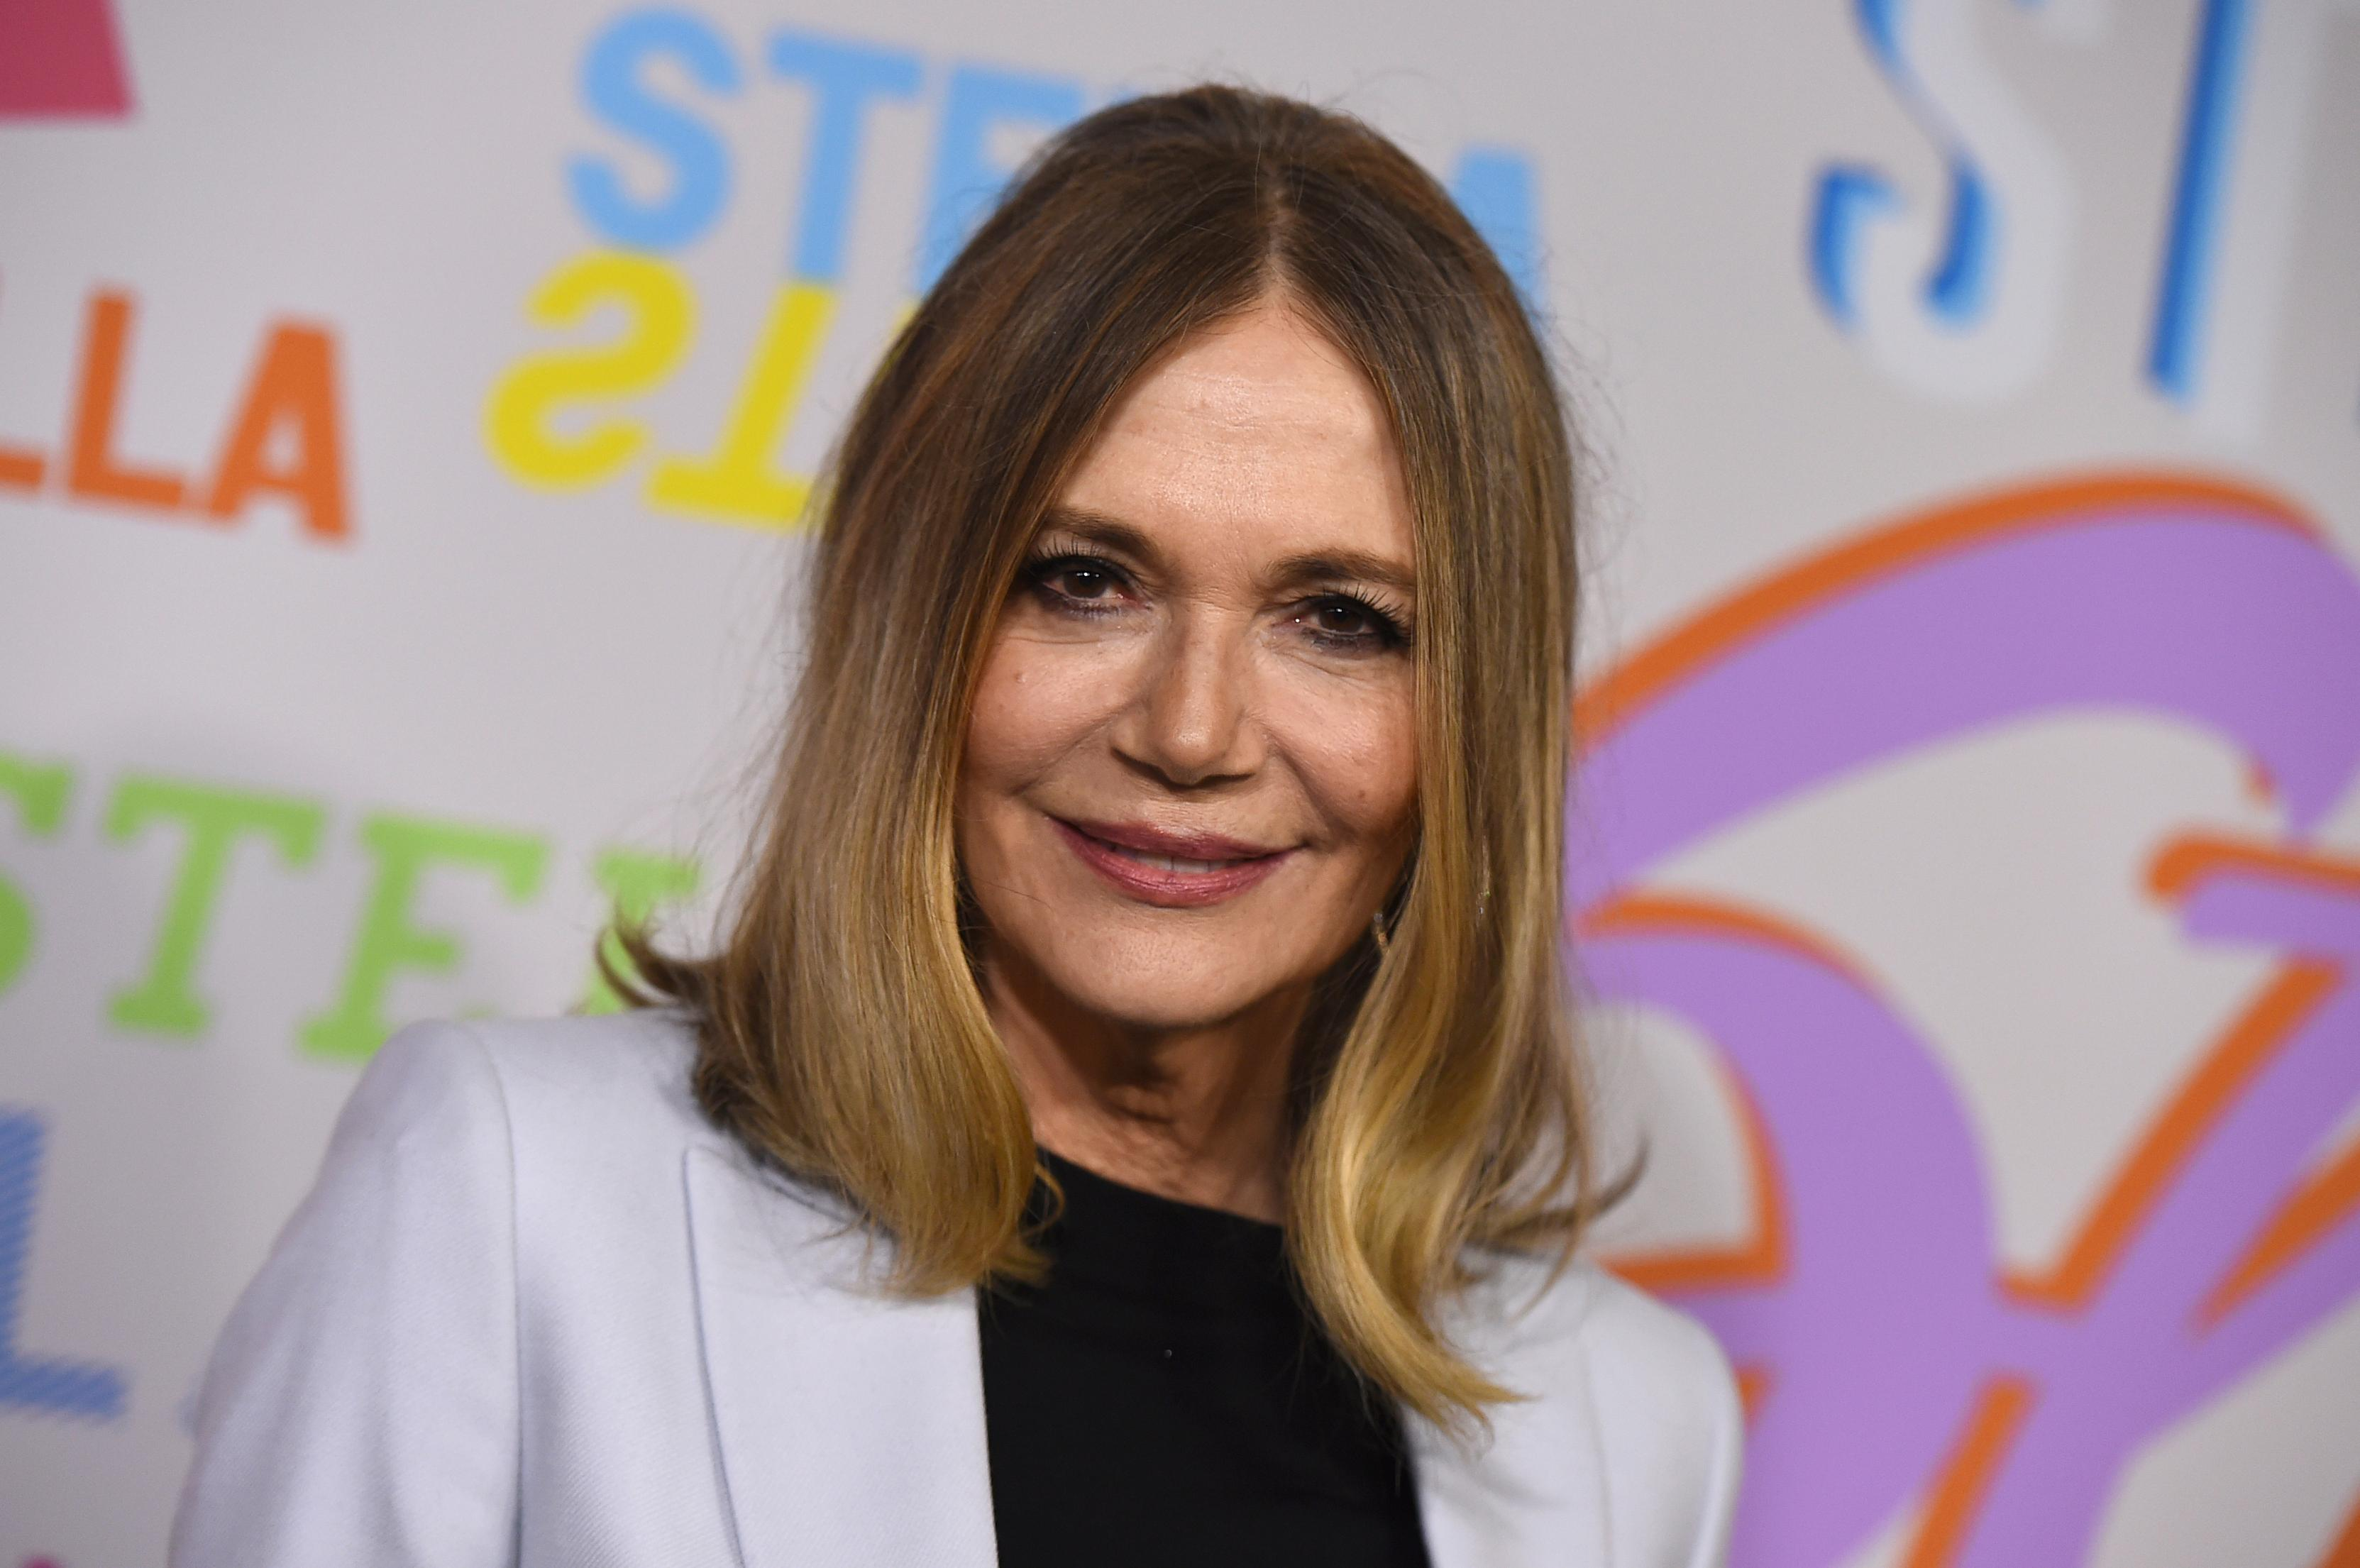 "FILE - In this Jan. 16, 2018 file photo, Peggy Lipton arrives at the Stella McCartney Autumn 2018 Presentation in Los Angeles. Lipton, a star of the groundbreaking late 1960s TV show ""The Mod Squad"" and the 1990s show ""Twin Peaks,"" has died of cancer at age 72. Lipton's daughters Rashida and Kidada Jones say in a statement that Lipton died Saturday, May 11, 2019, surrounded by her family. (Photo by Jordan Strauss/Invision/AP, File)"